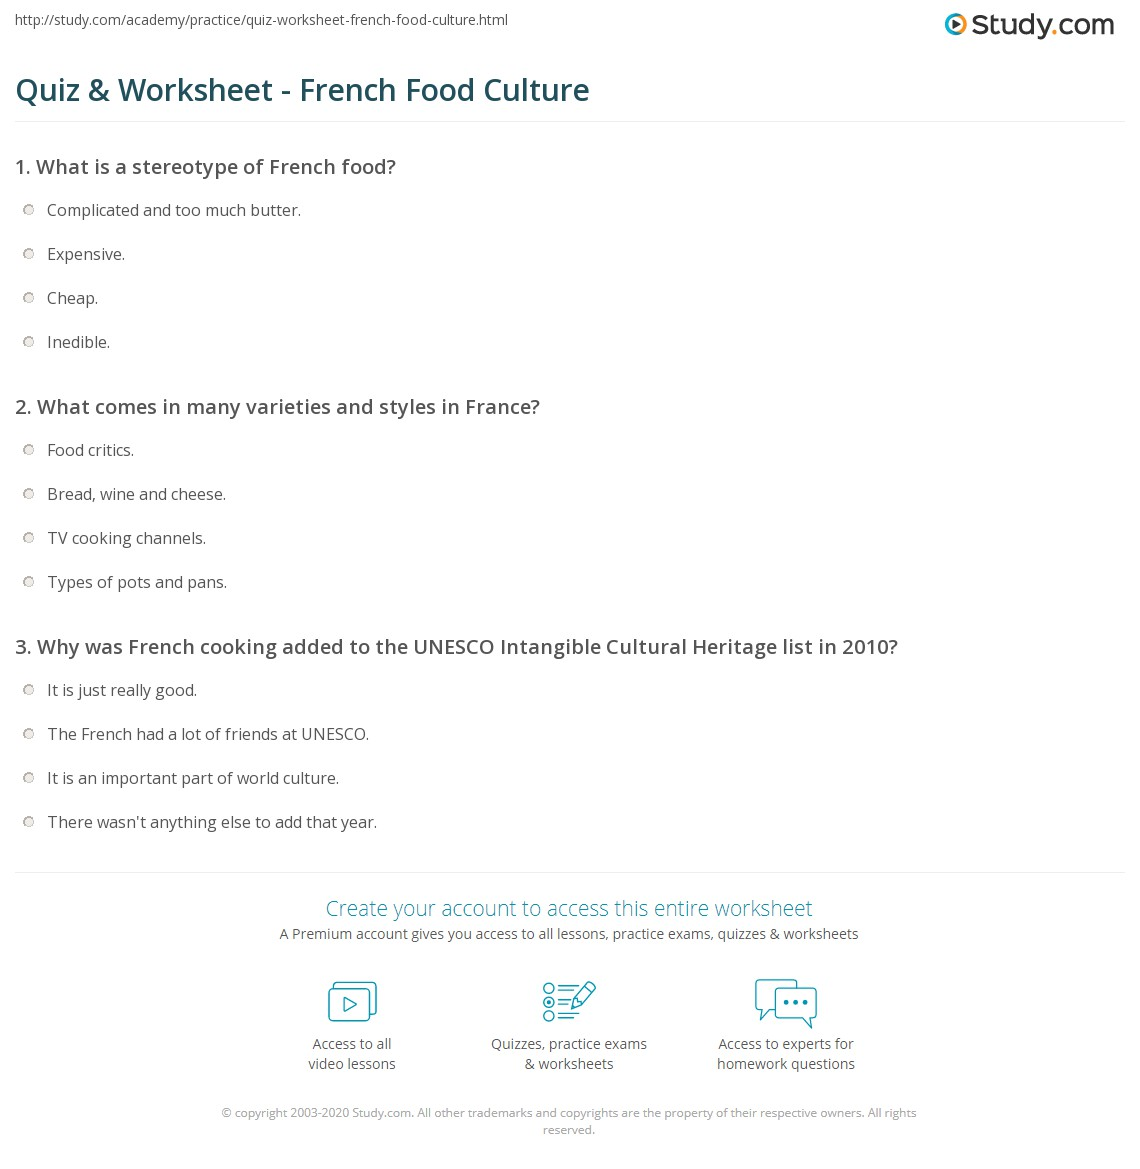 Quiz & Worksheet - French Food Culture | Study.com